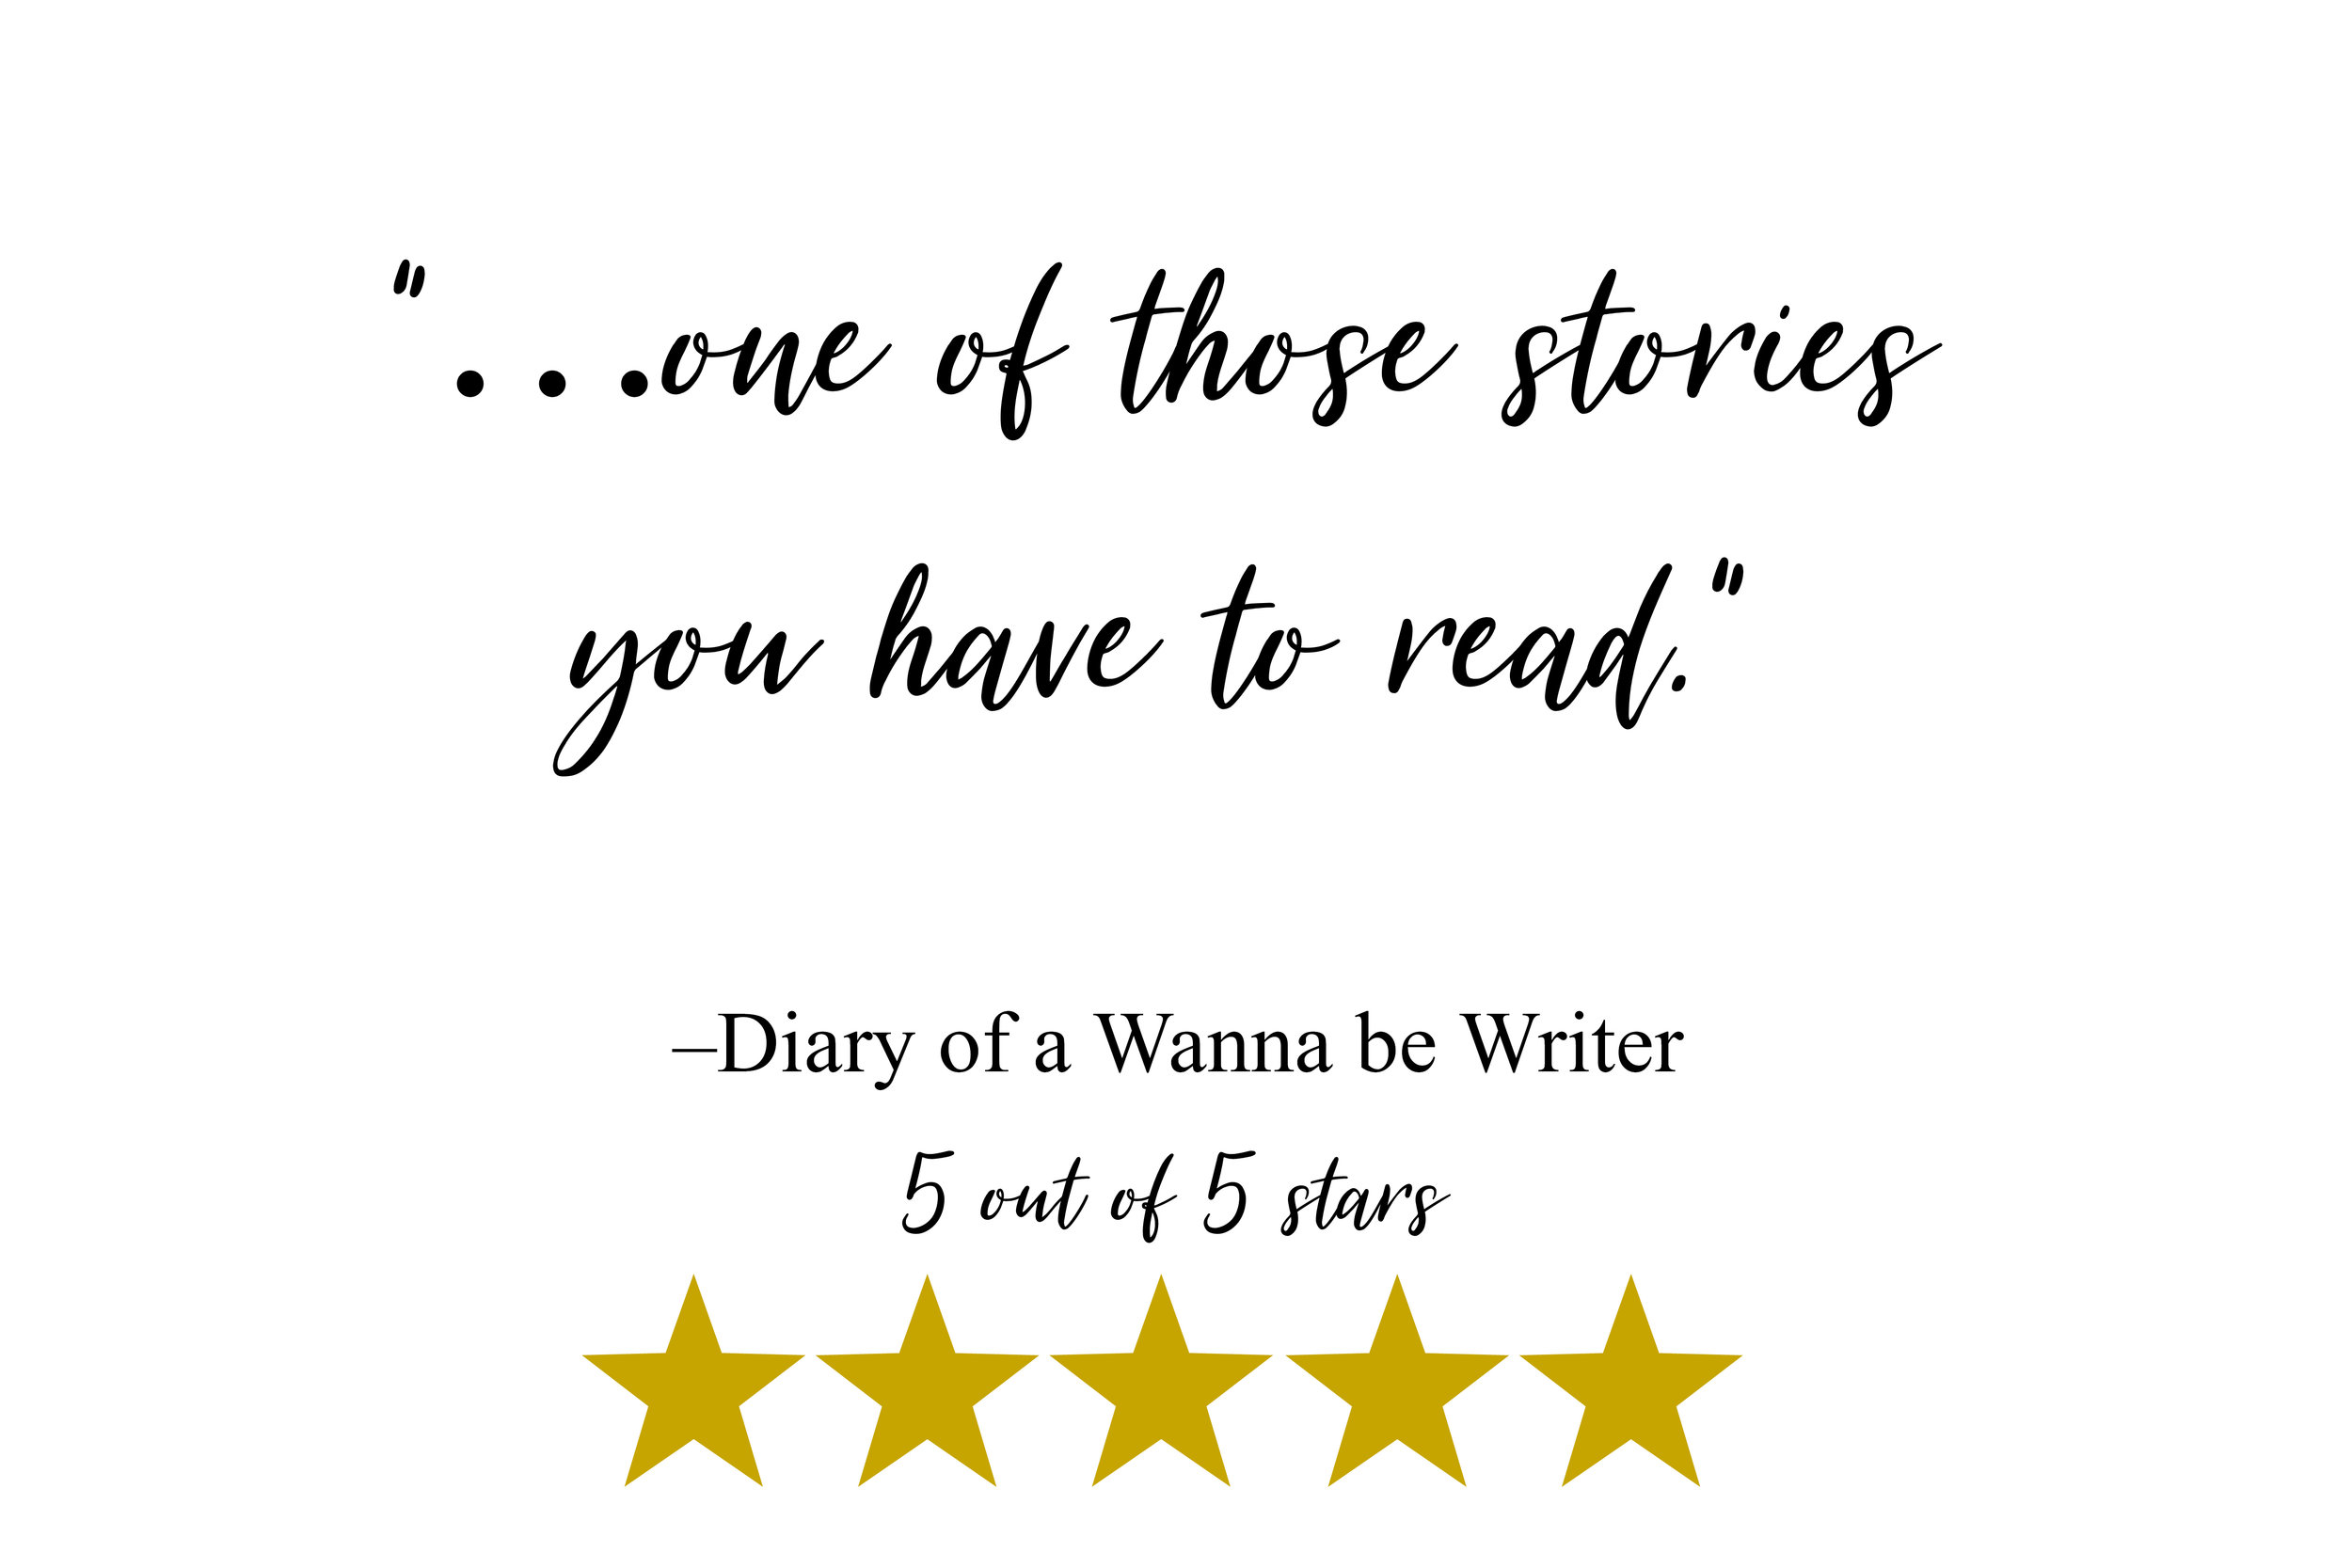 """…one of those stories you have to read."" –Diary of a Wanna be Writer"